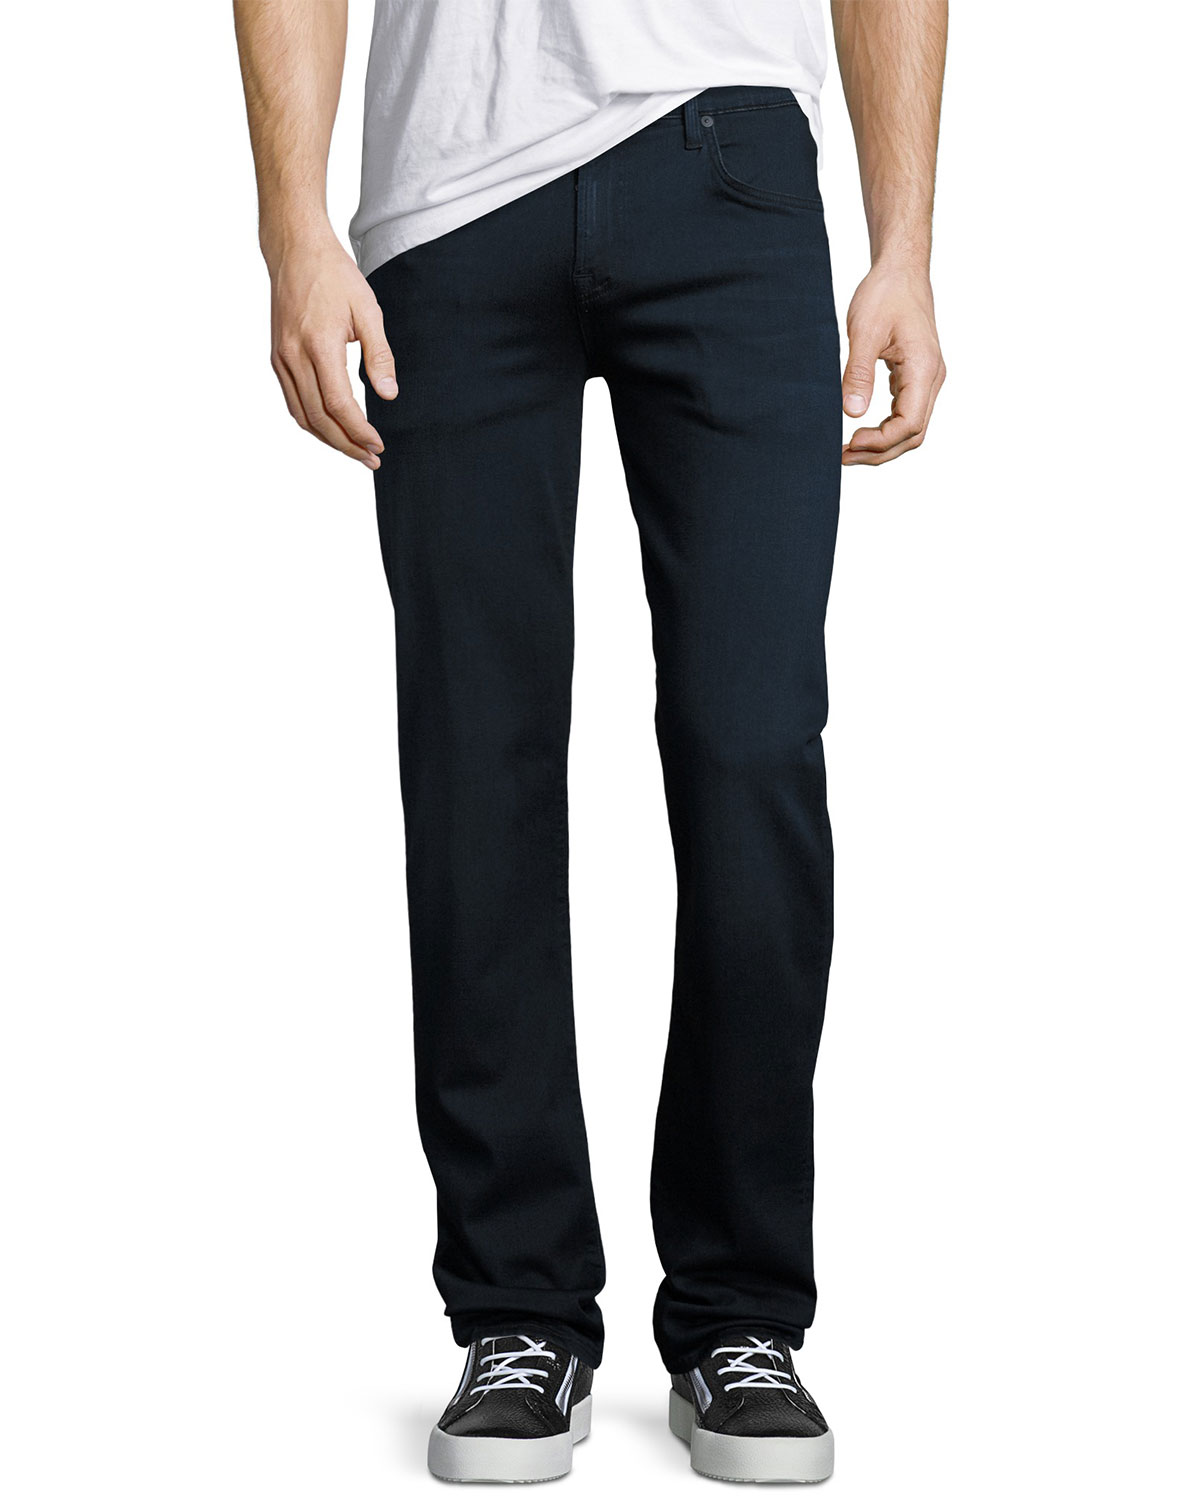 37e05fc9a326 7 for all mankind Men s Luxe Sport  Slimmy Blue Jeans